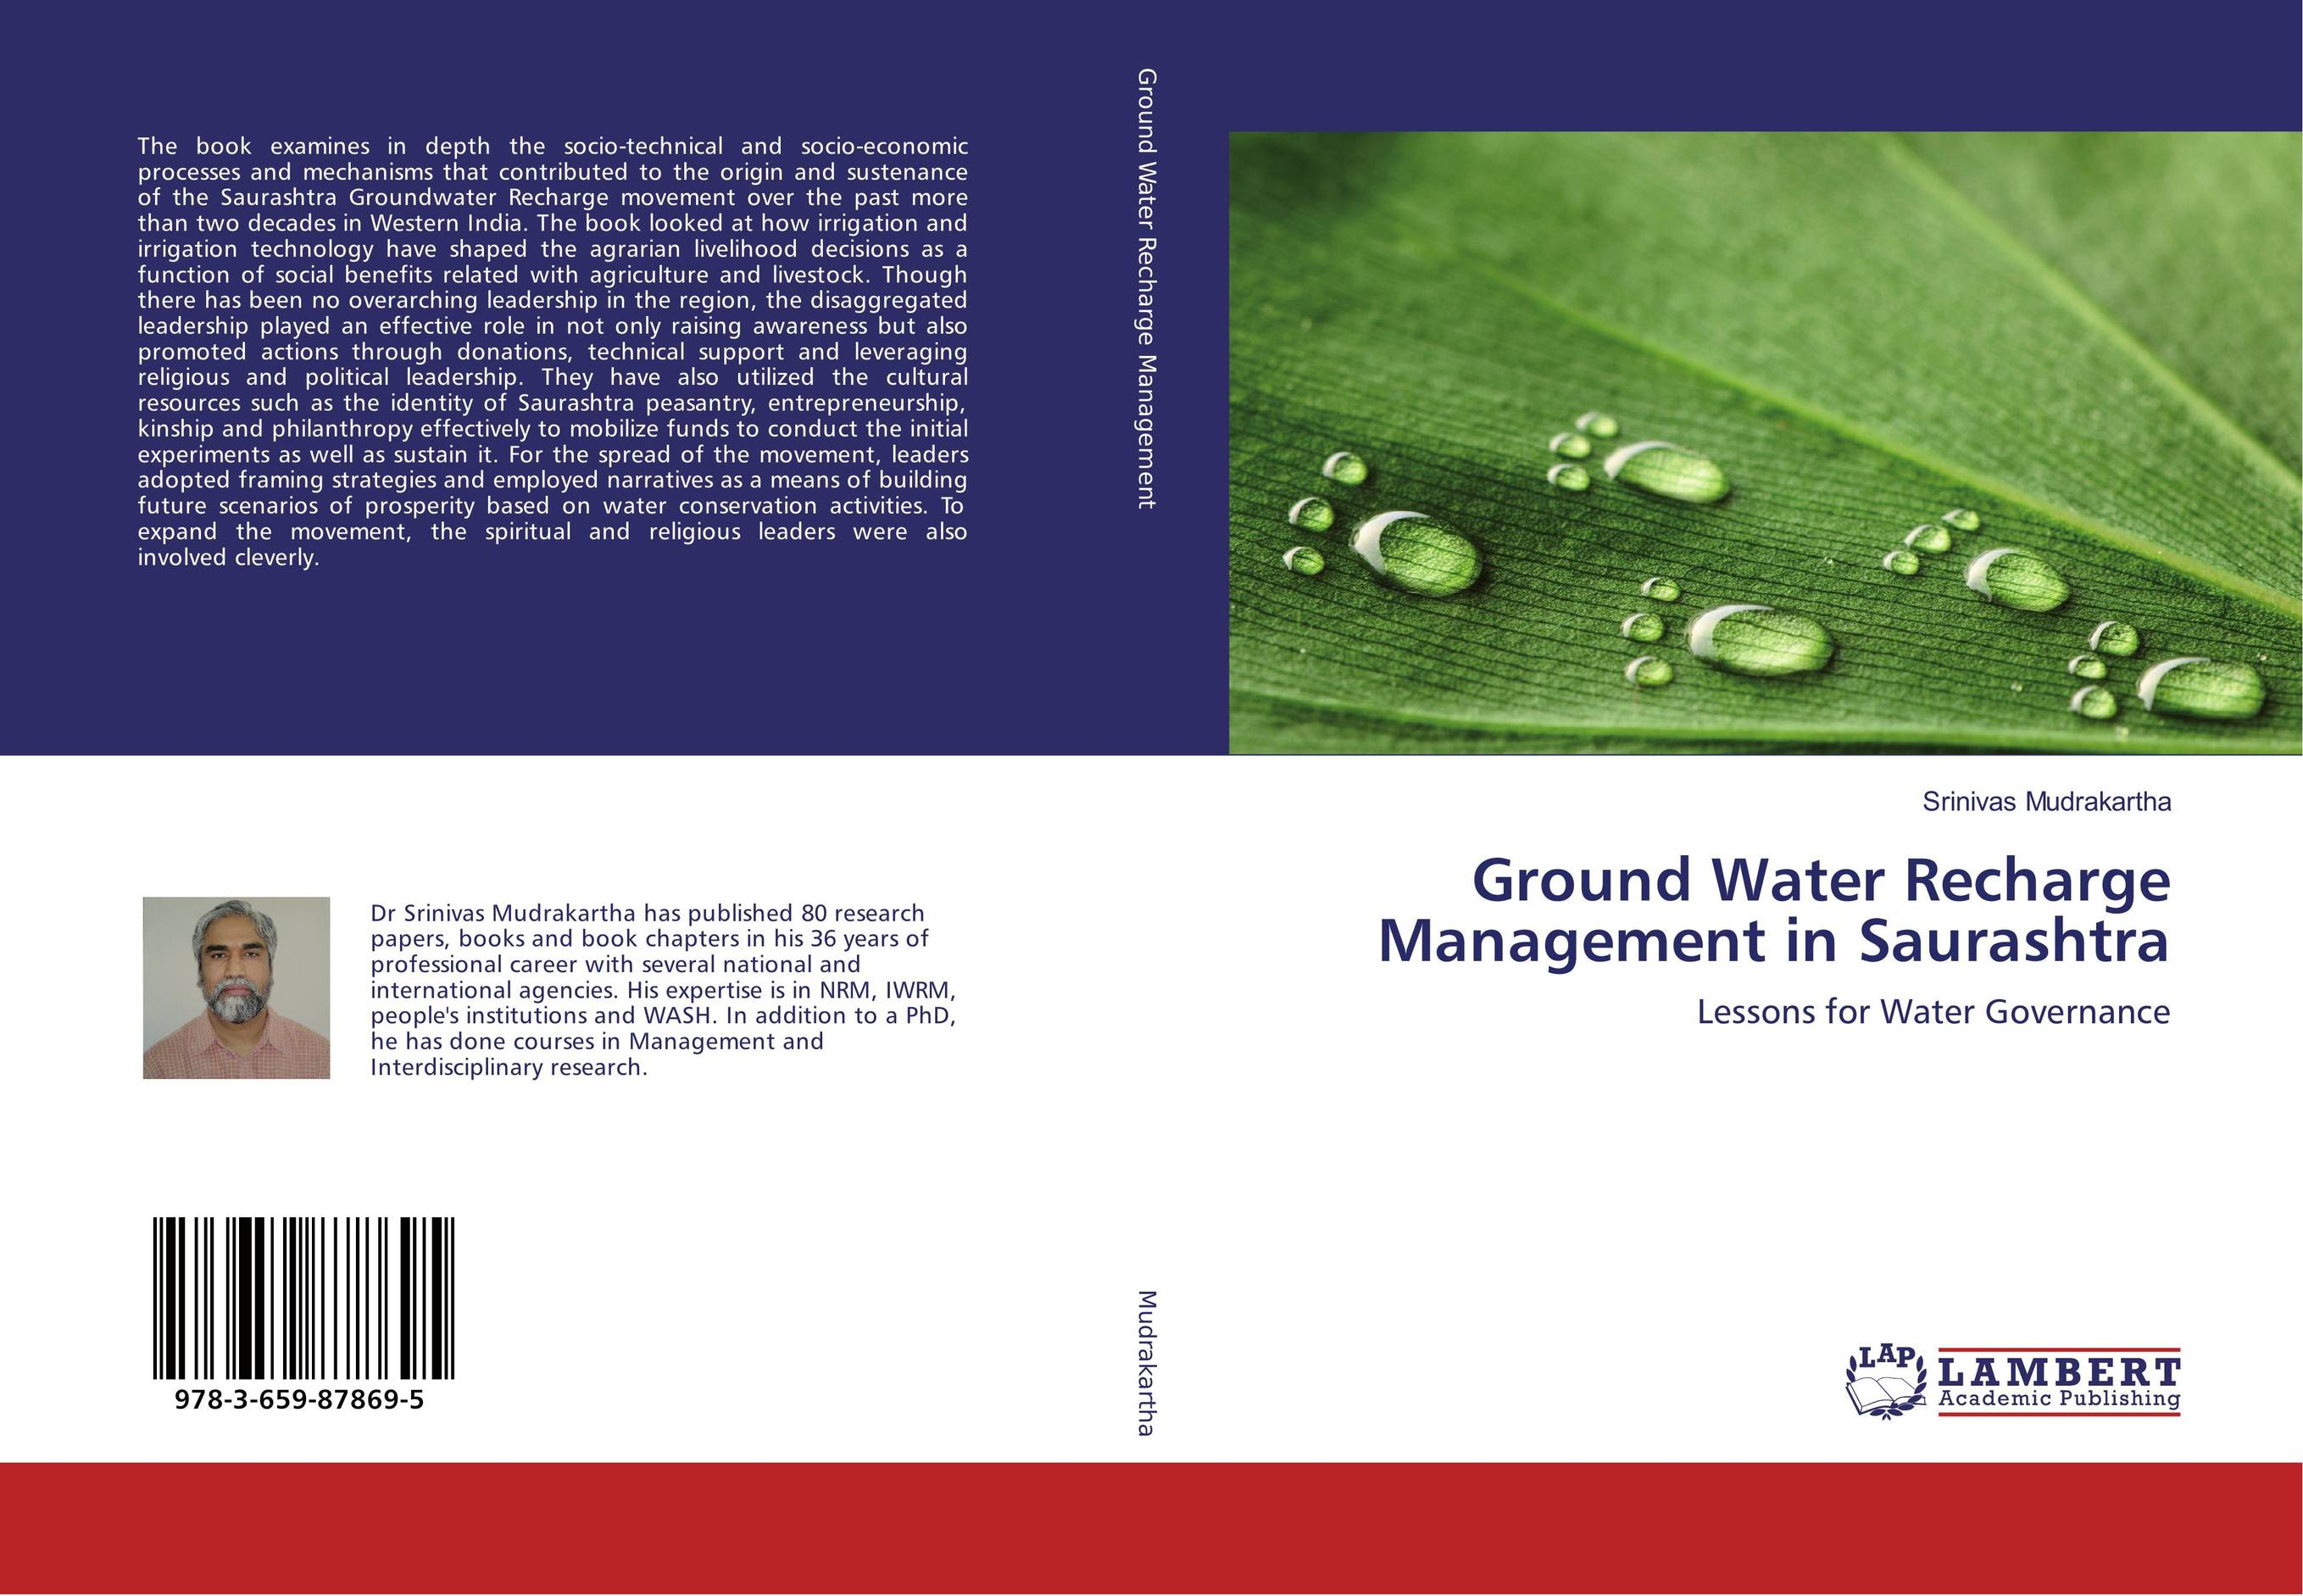 цена на Ground Water Recharge Management in Saurashtra